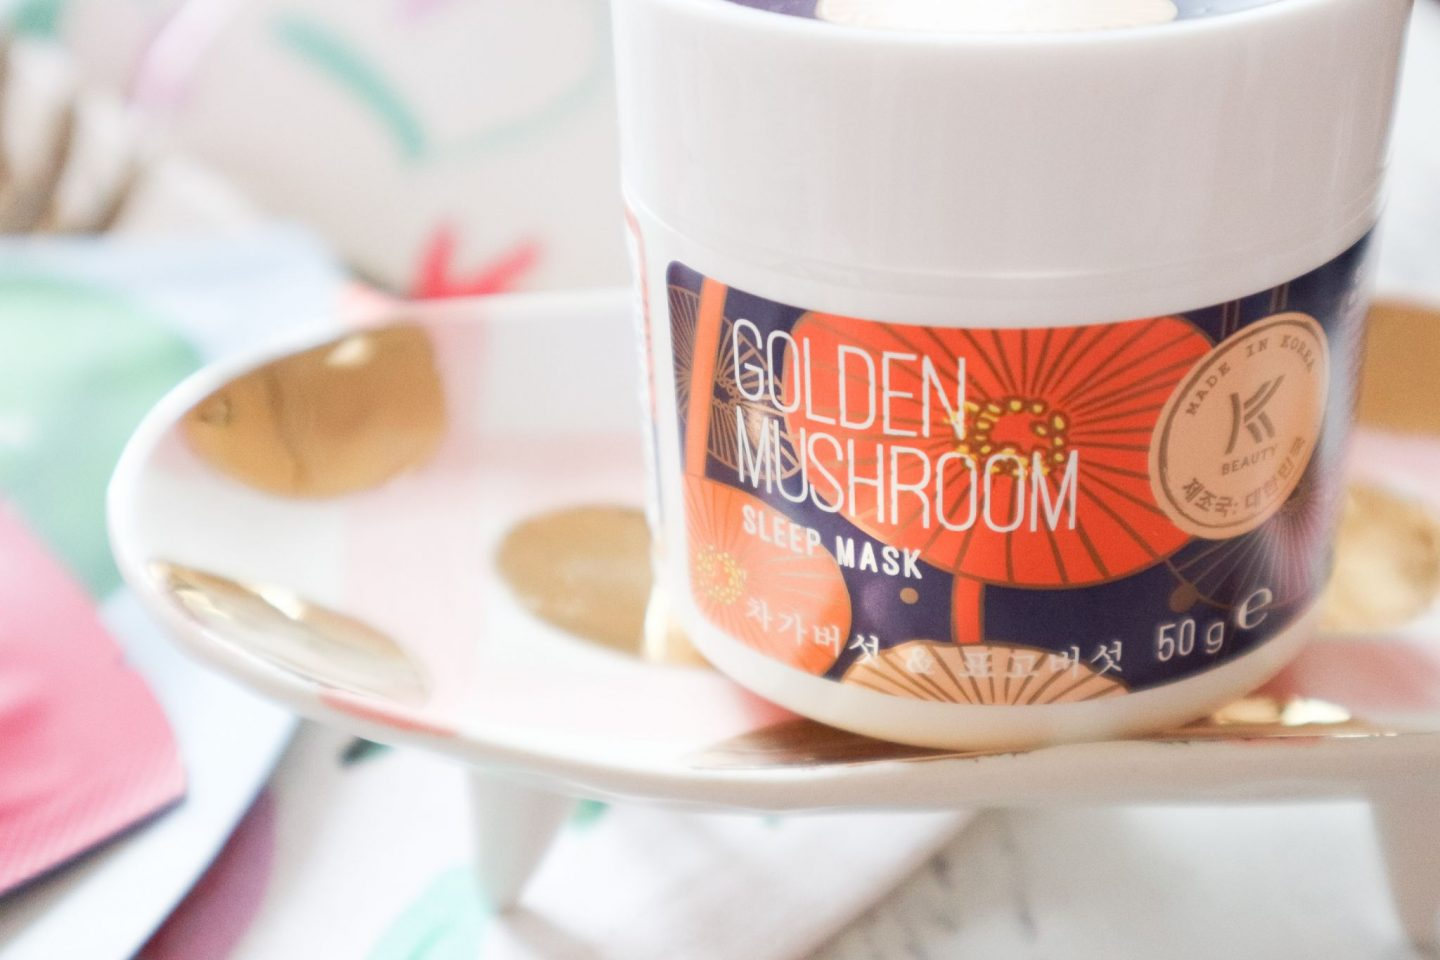 Avon Golden Mushroom Sleep Mask